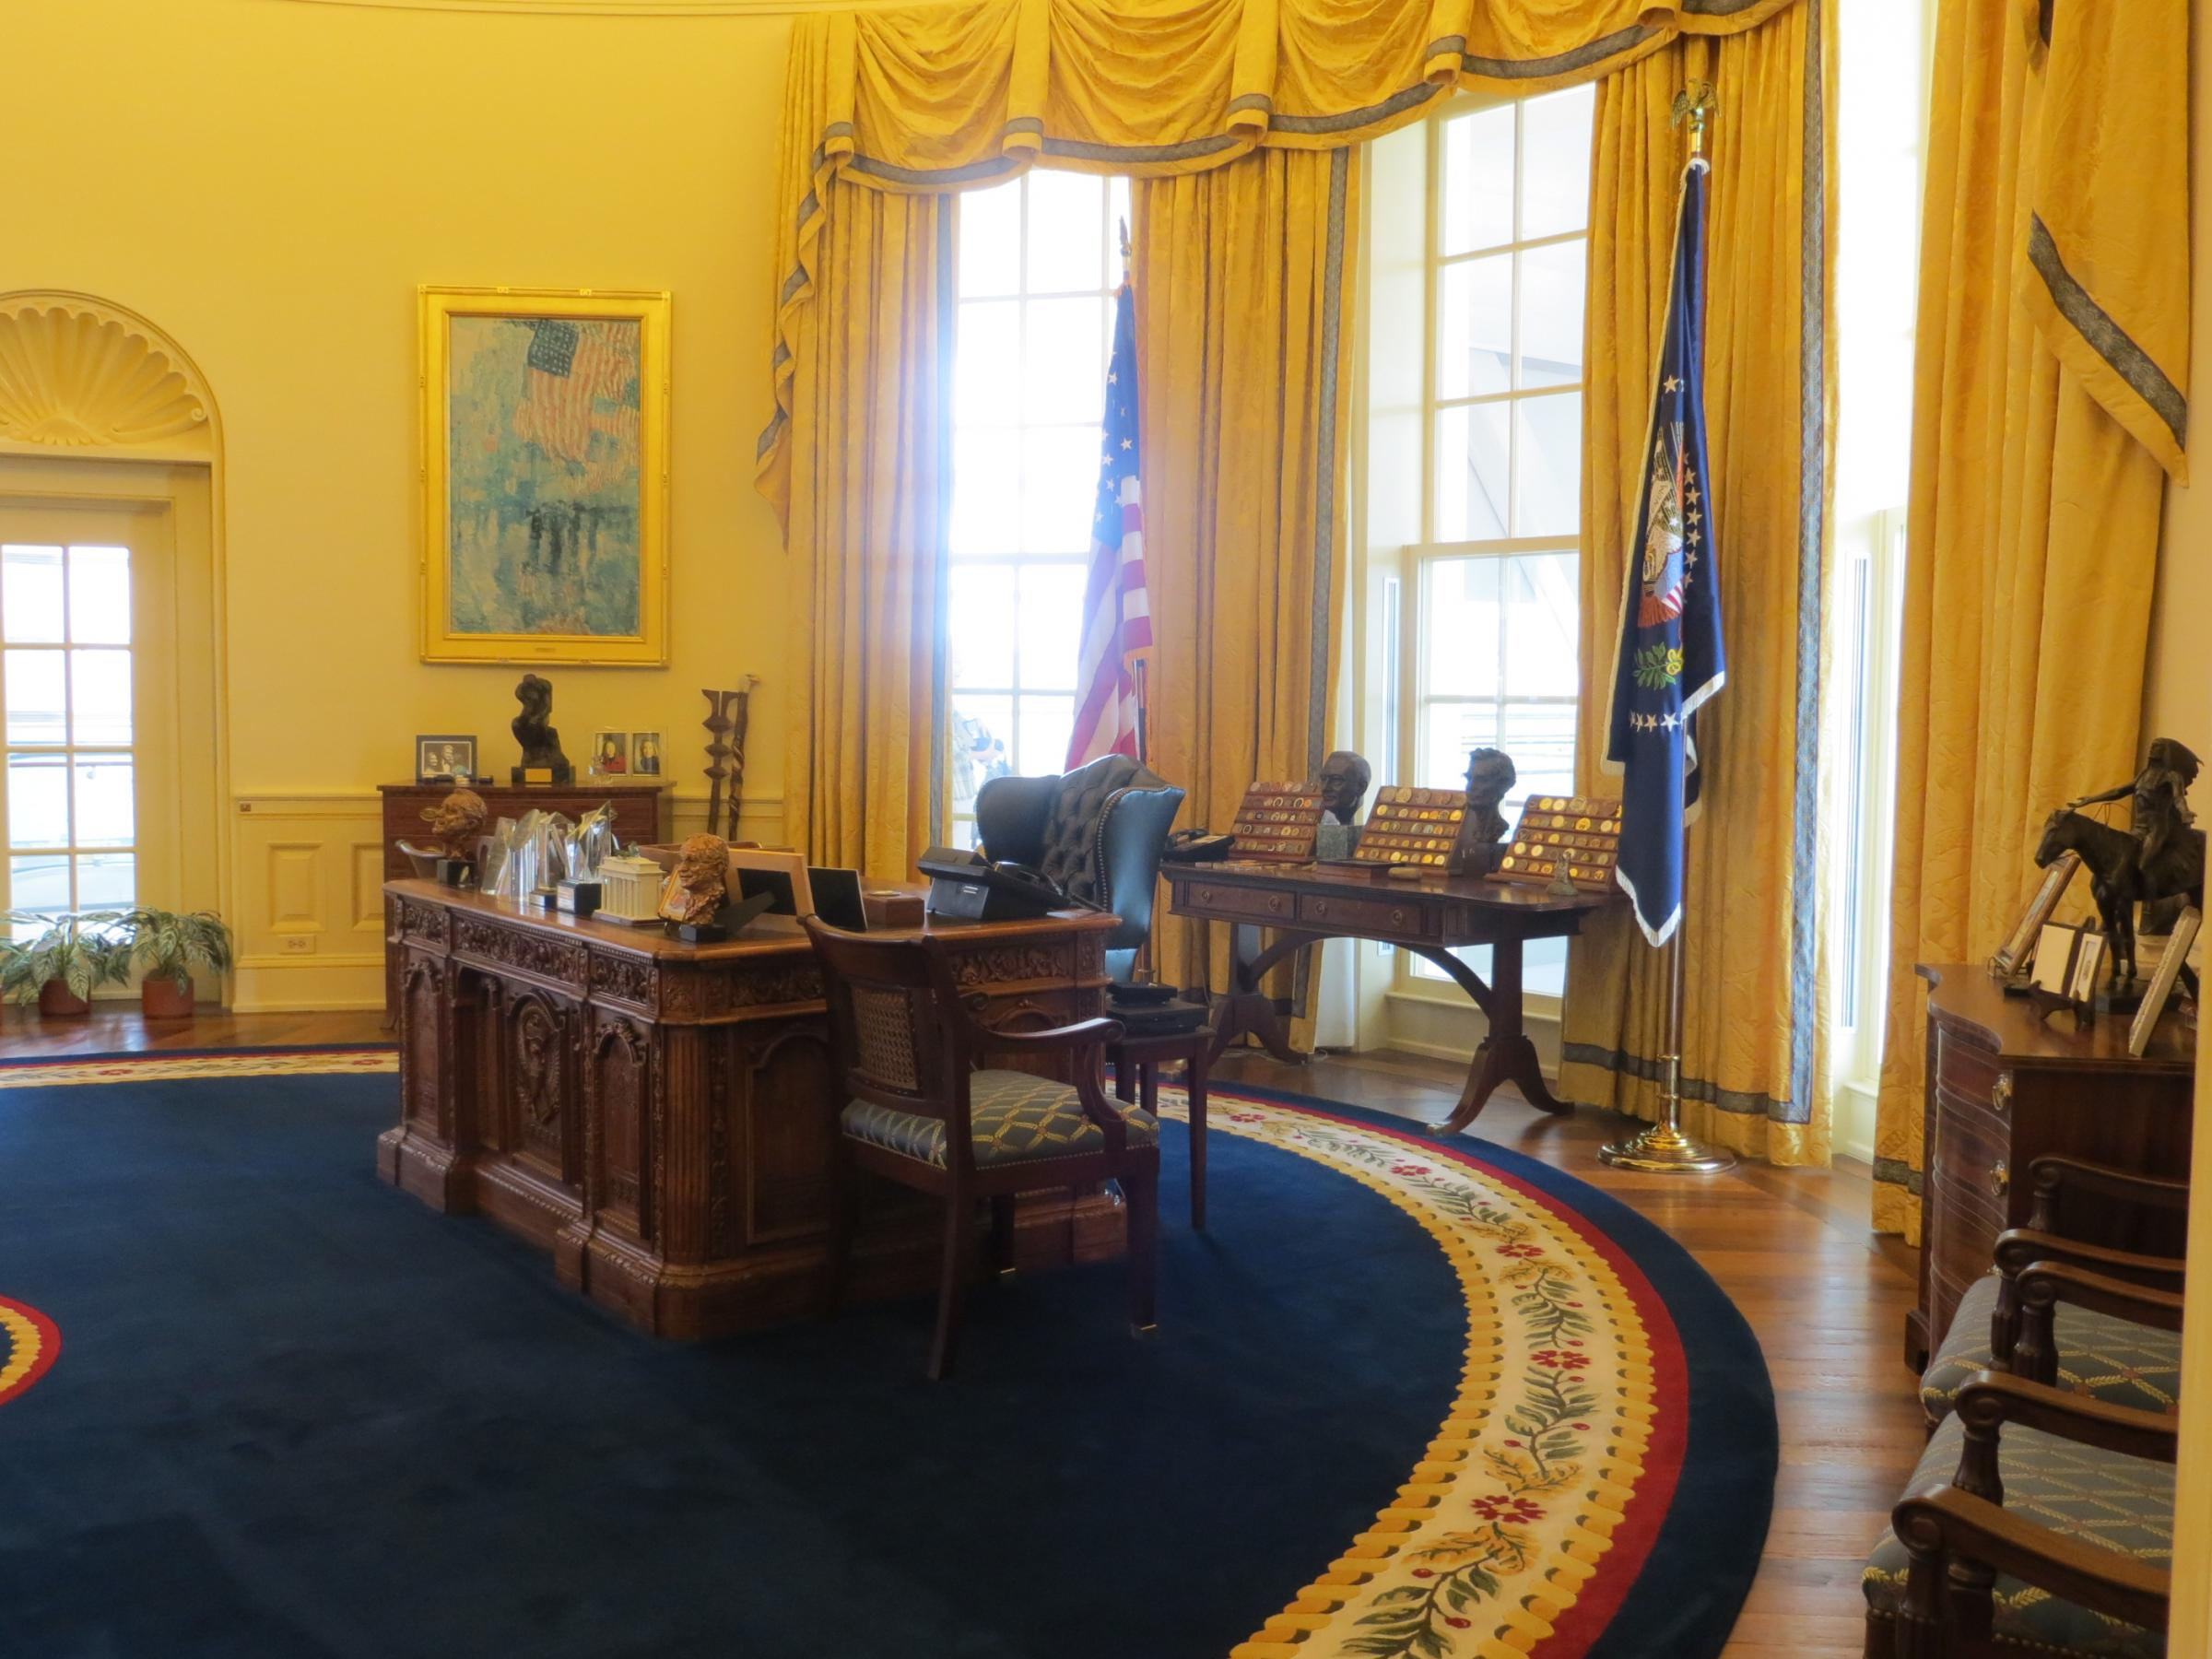 pictures of oval office. The Replica Of Oval Office Is Most Popular Exhibit At Clinton Presidential Center In Little Rock, Arkansas. Pictures